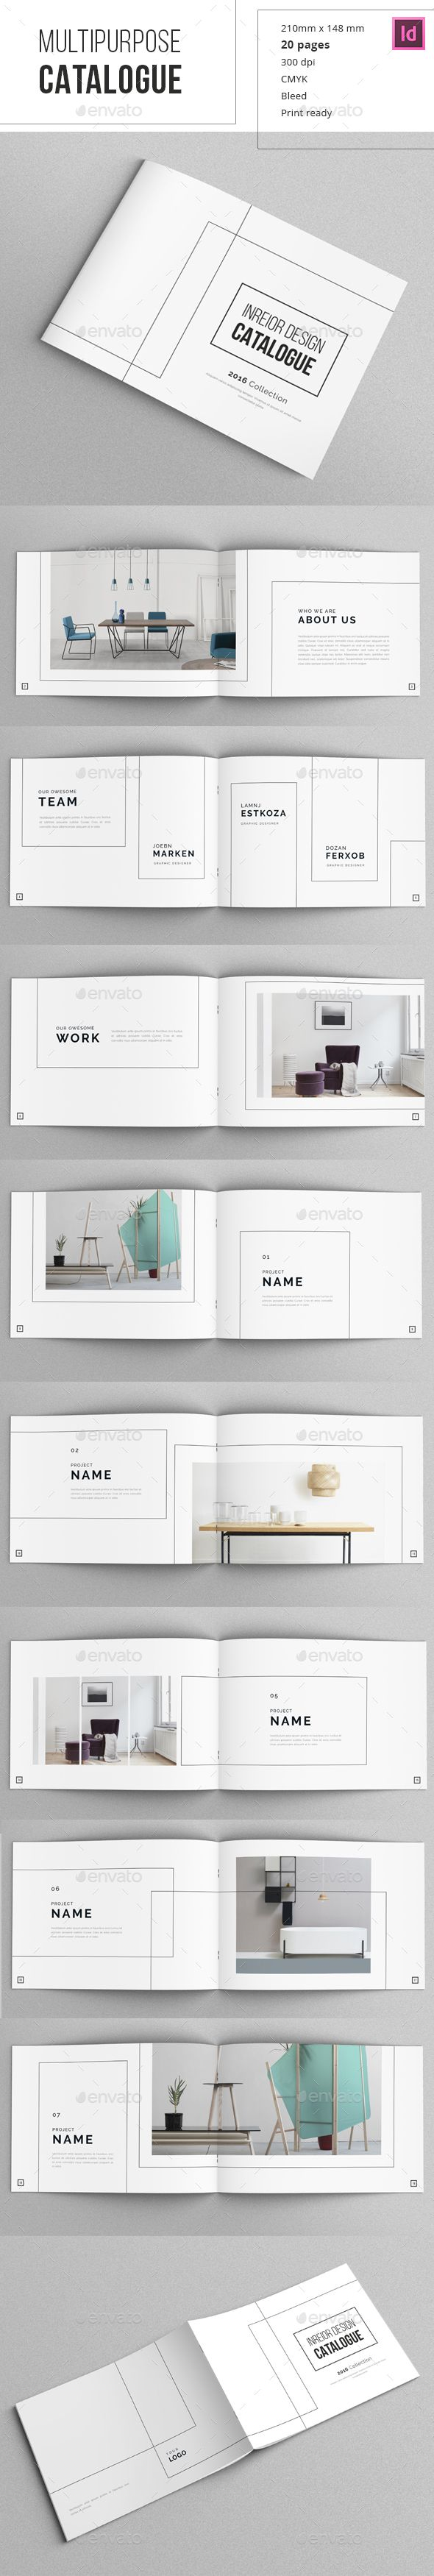 Best 25 Layout Design Ideas On Pinterest